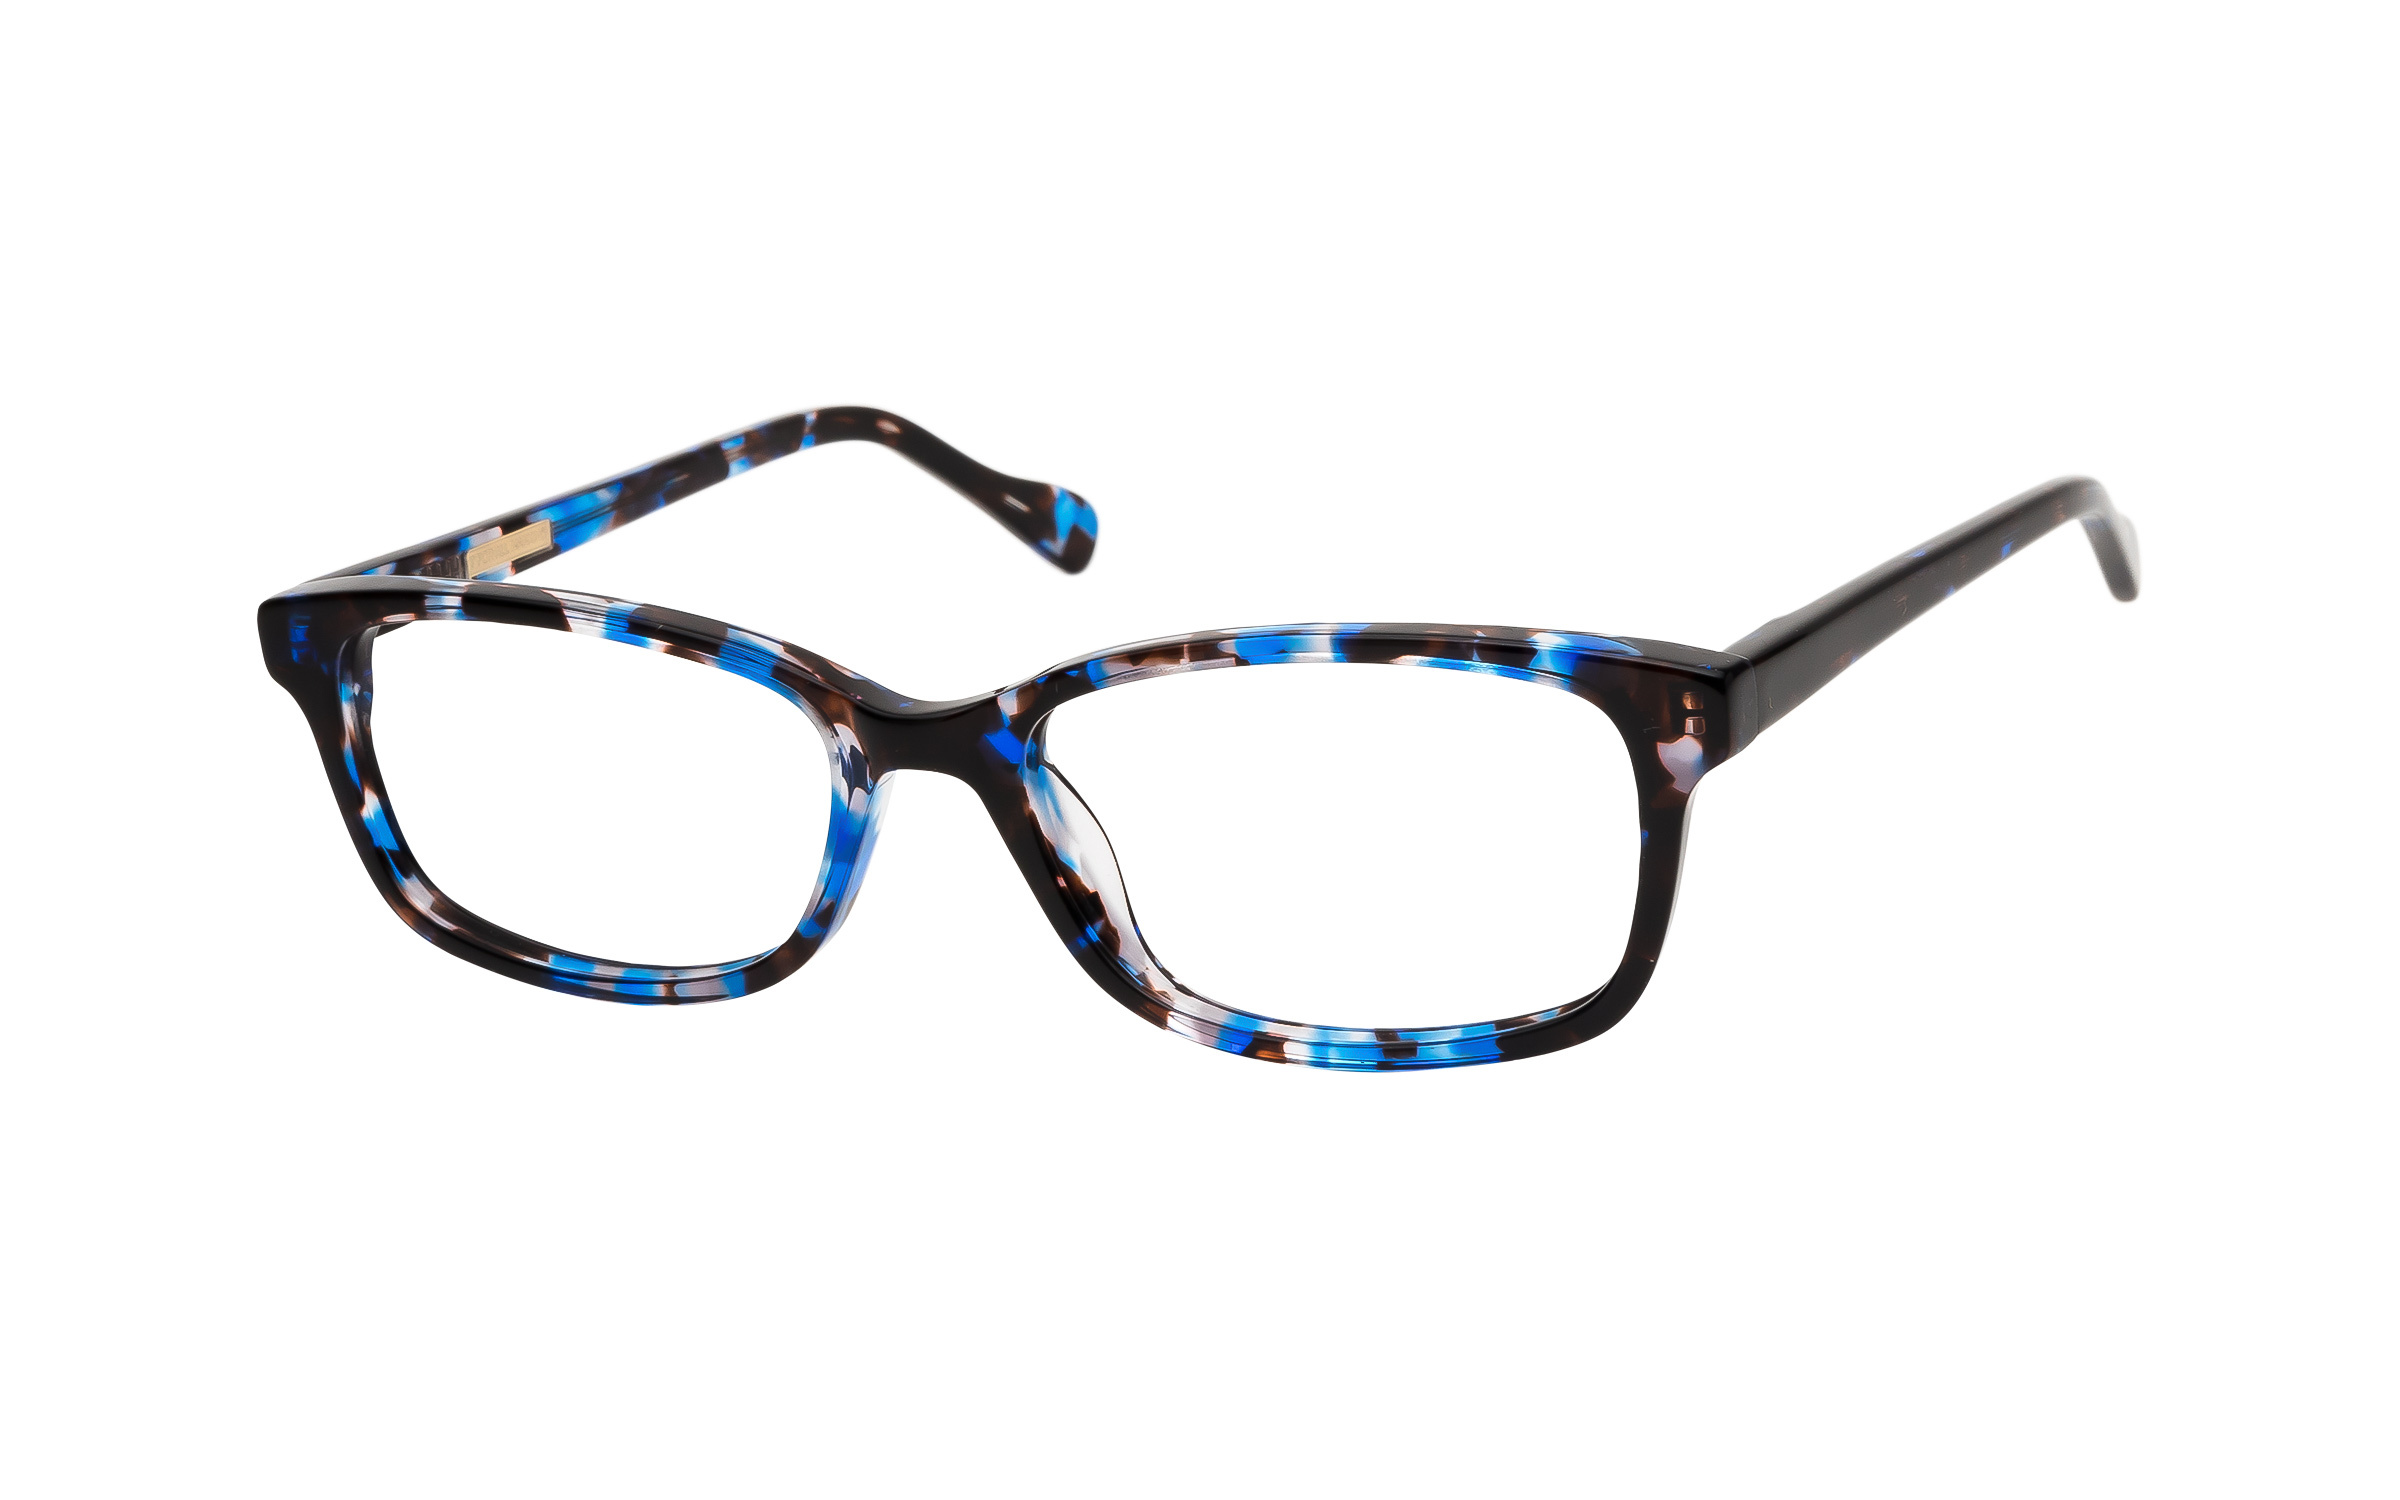 7 for All Mankind Glasses Rectangular Blue/Tortoise Acetate Online Clearly